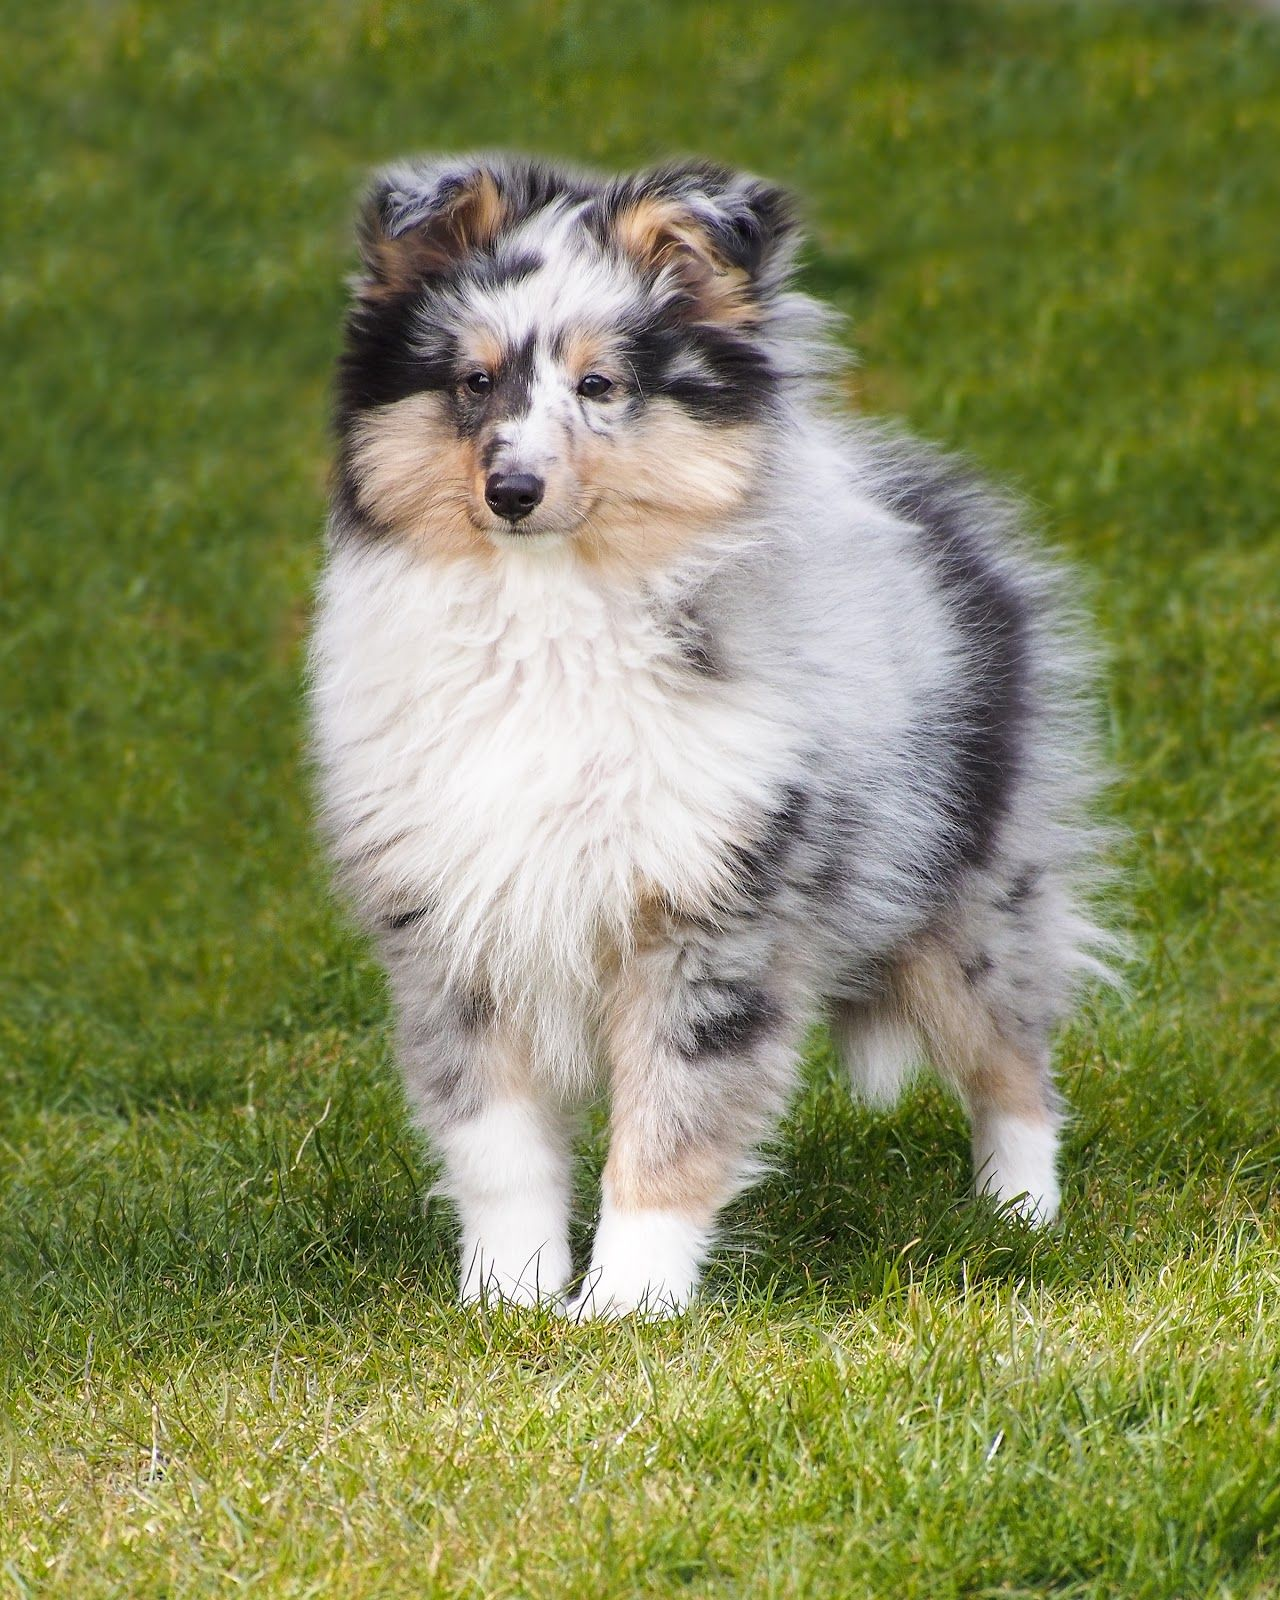 It S All About The Light Puppies Sheep Dog Puppy Shetland Sheepdog Puppies Shetland Sheepdog Blue Merle